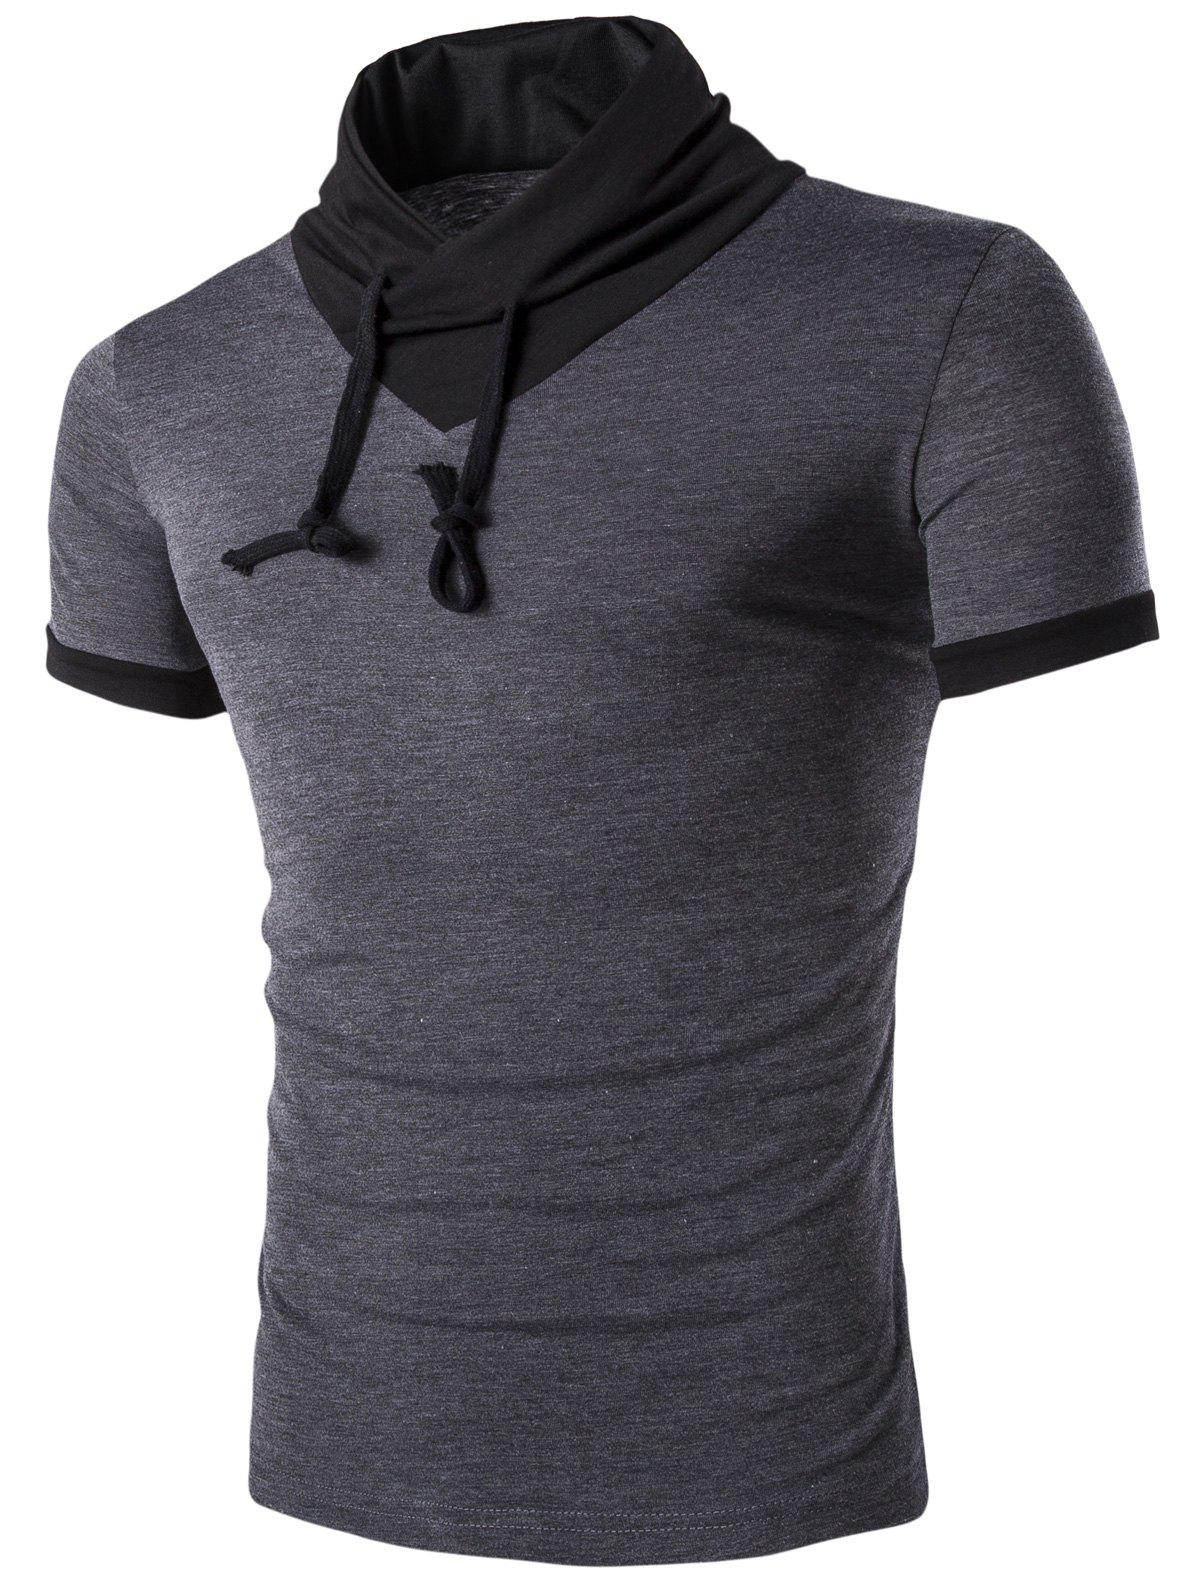 Men's Stand Collar Solid Color Short Sleeve T-Shirt - DEEP GRAY L